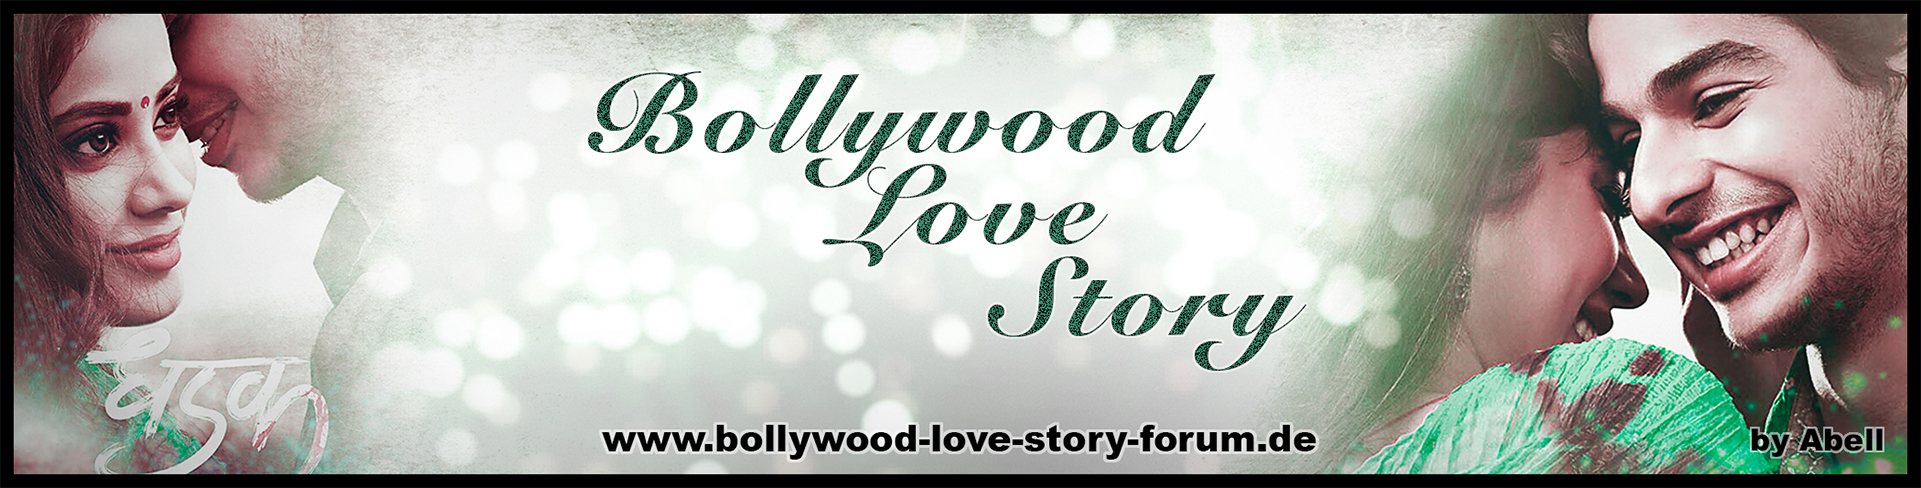 Bollywood-Love-Story